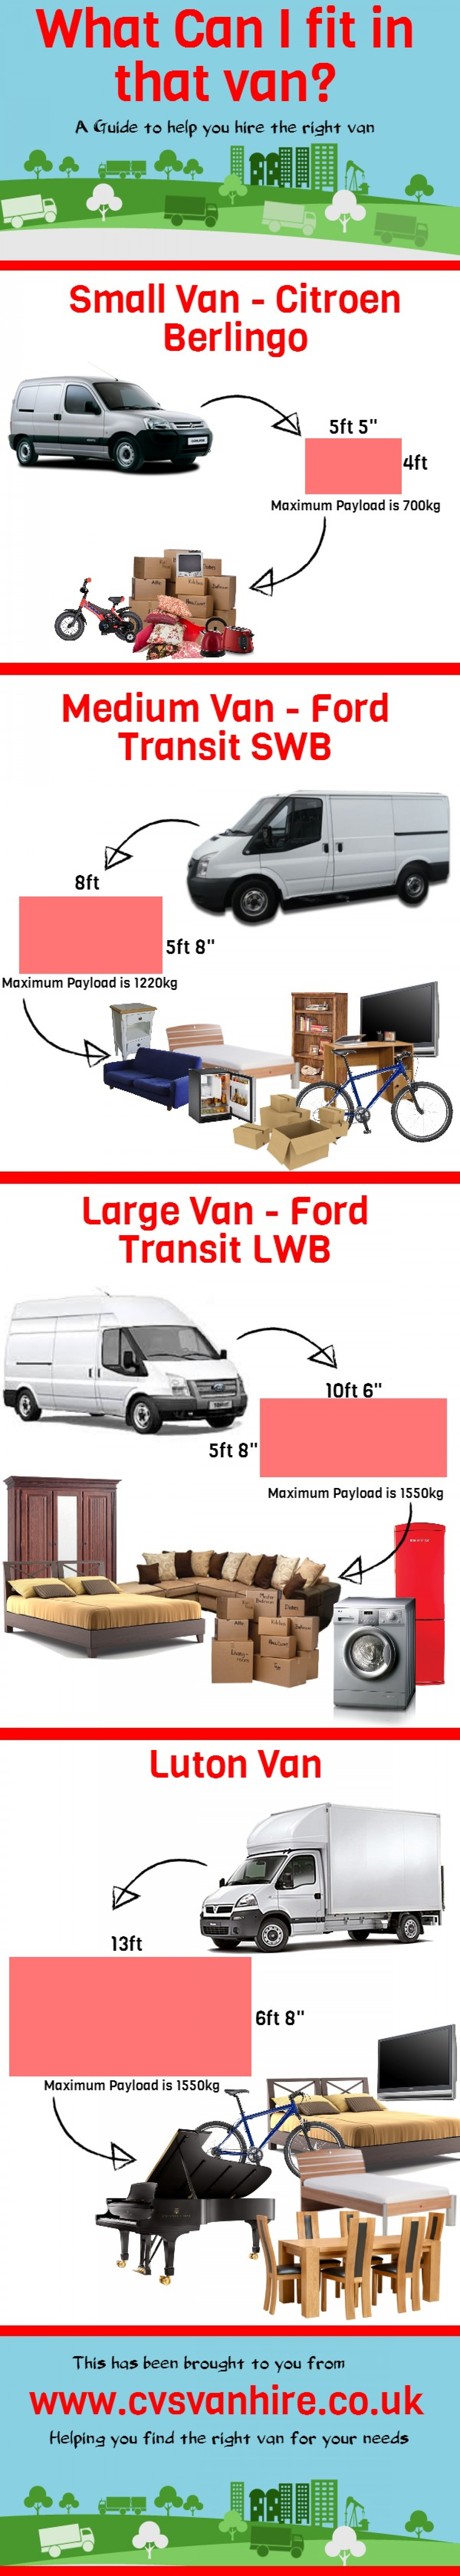 What Can I Fit In That Van? Infographic